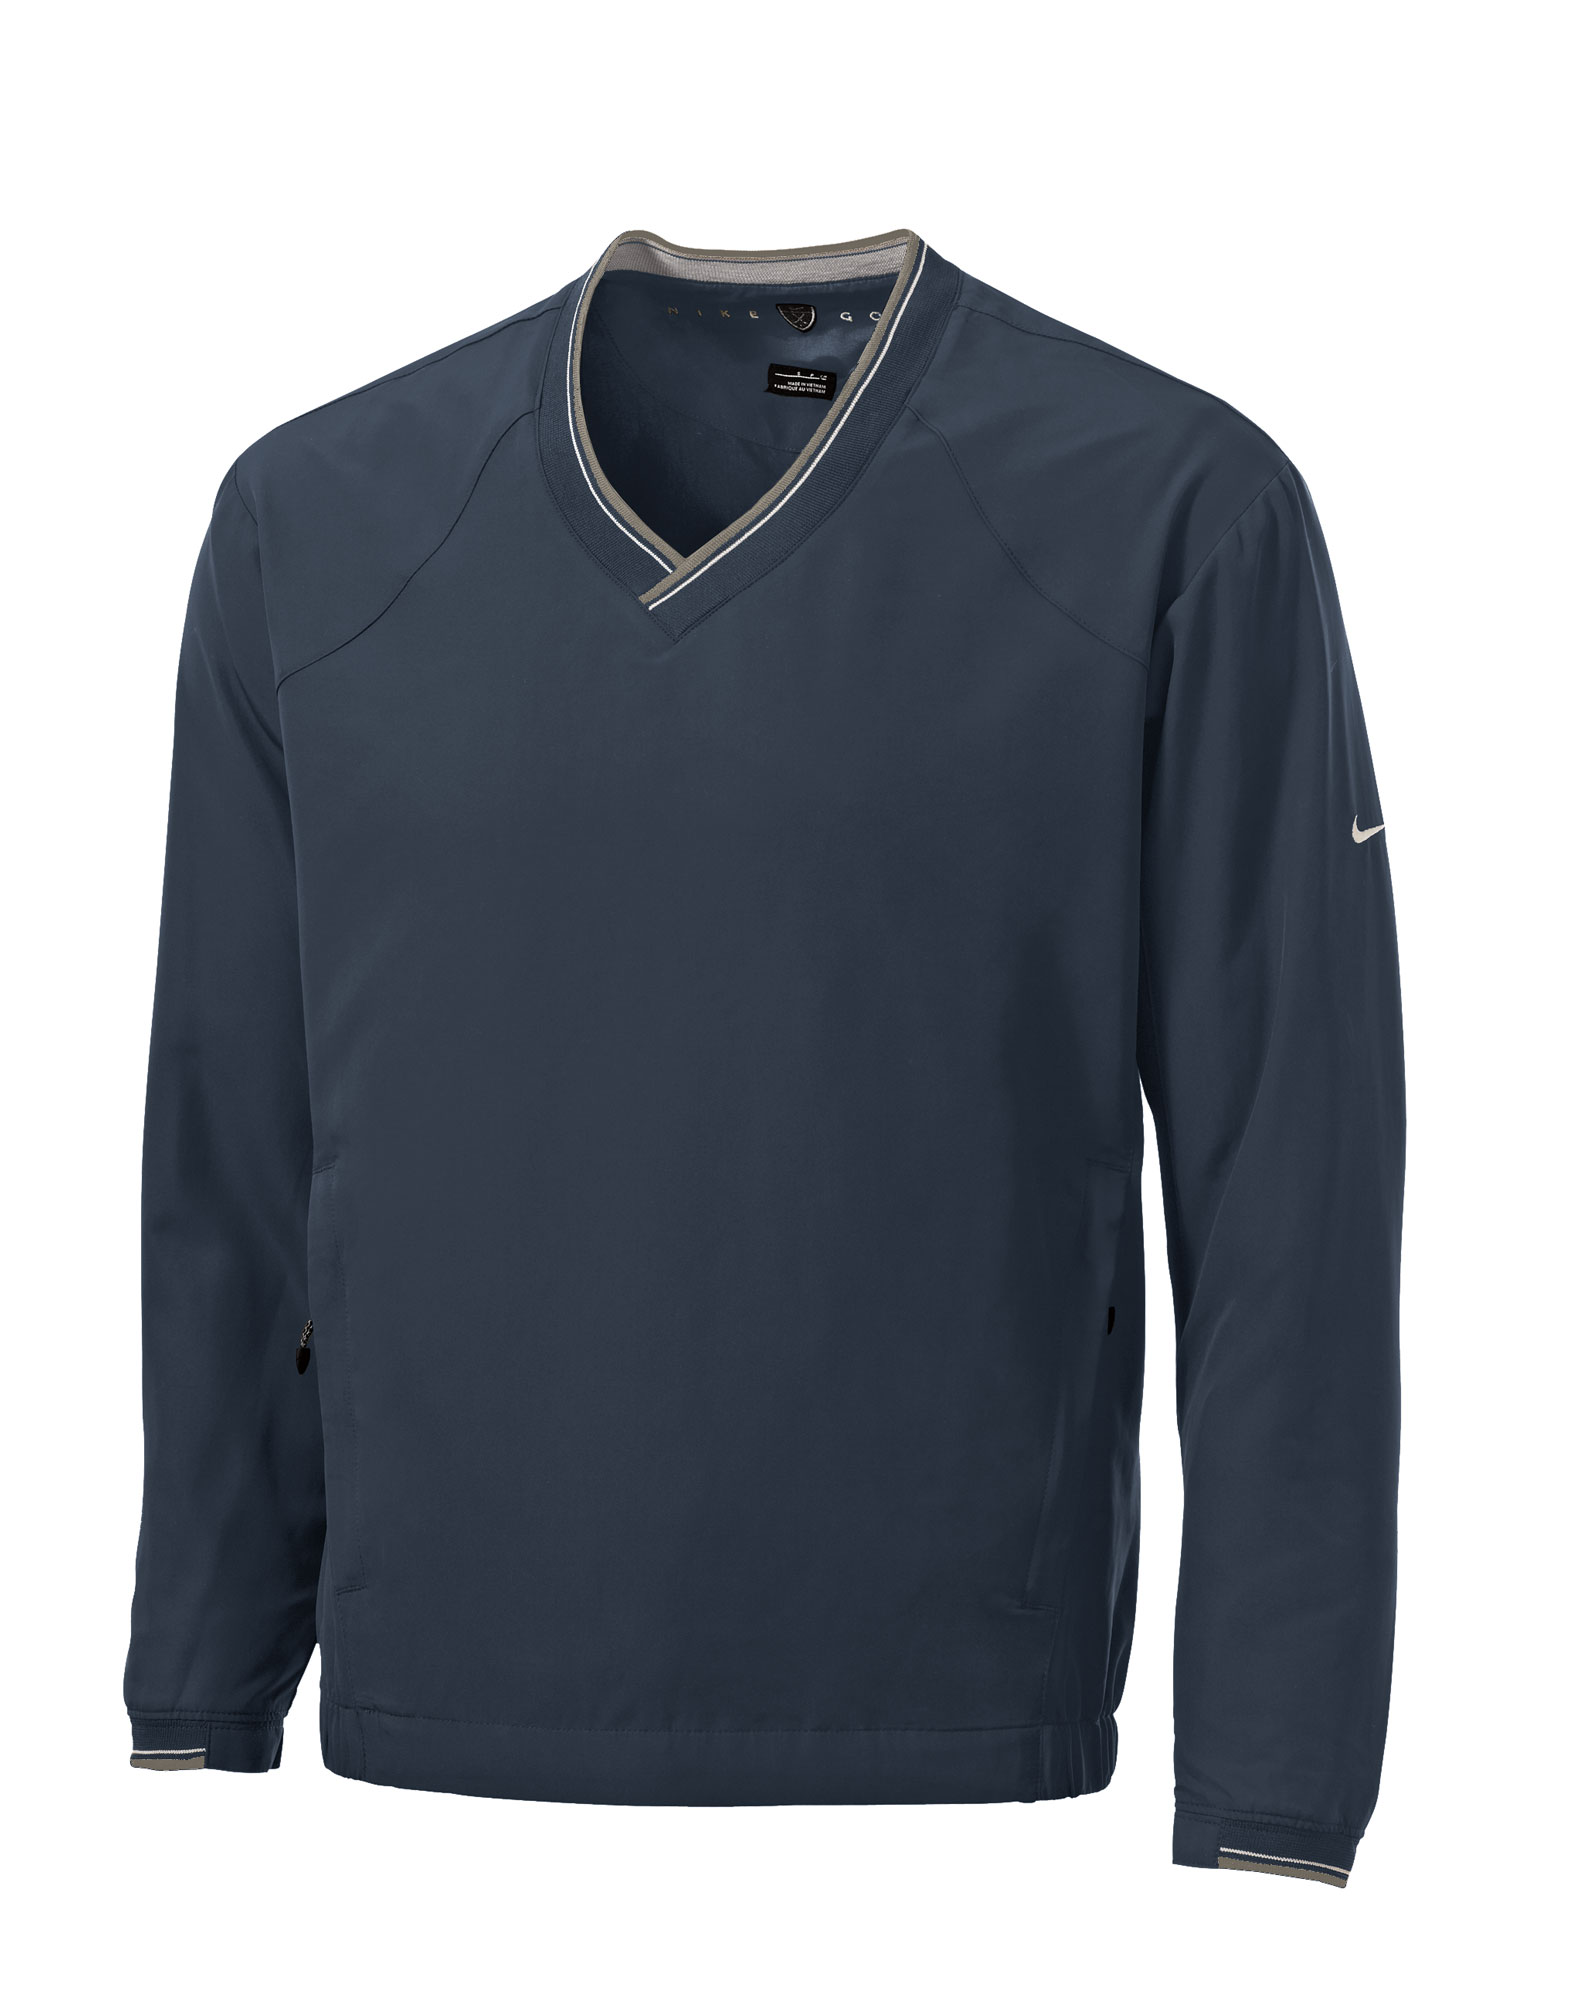 Nike Mens V-Neck Windshirt w/Trimmed Collar